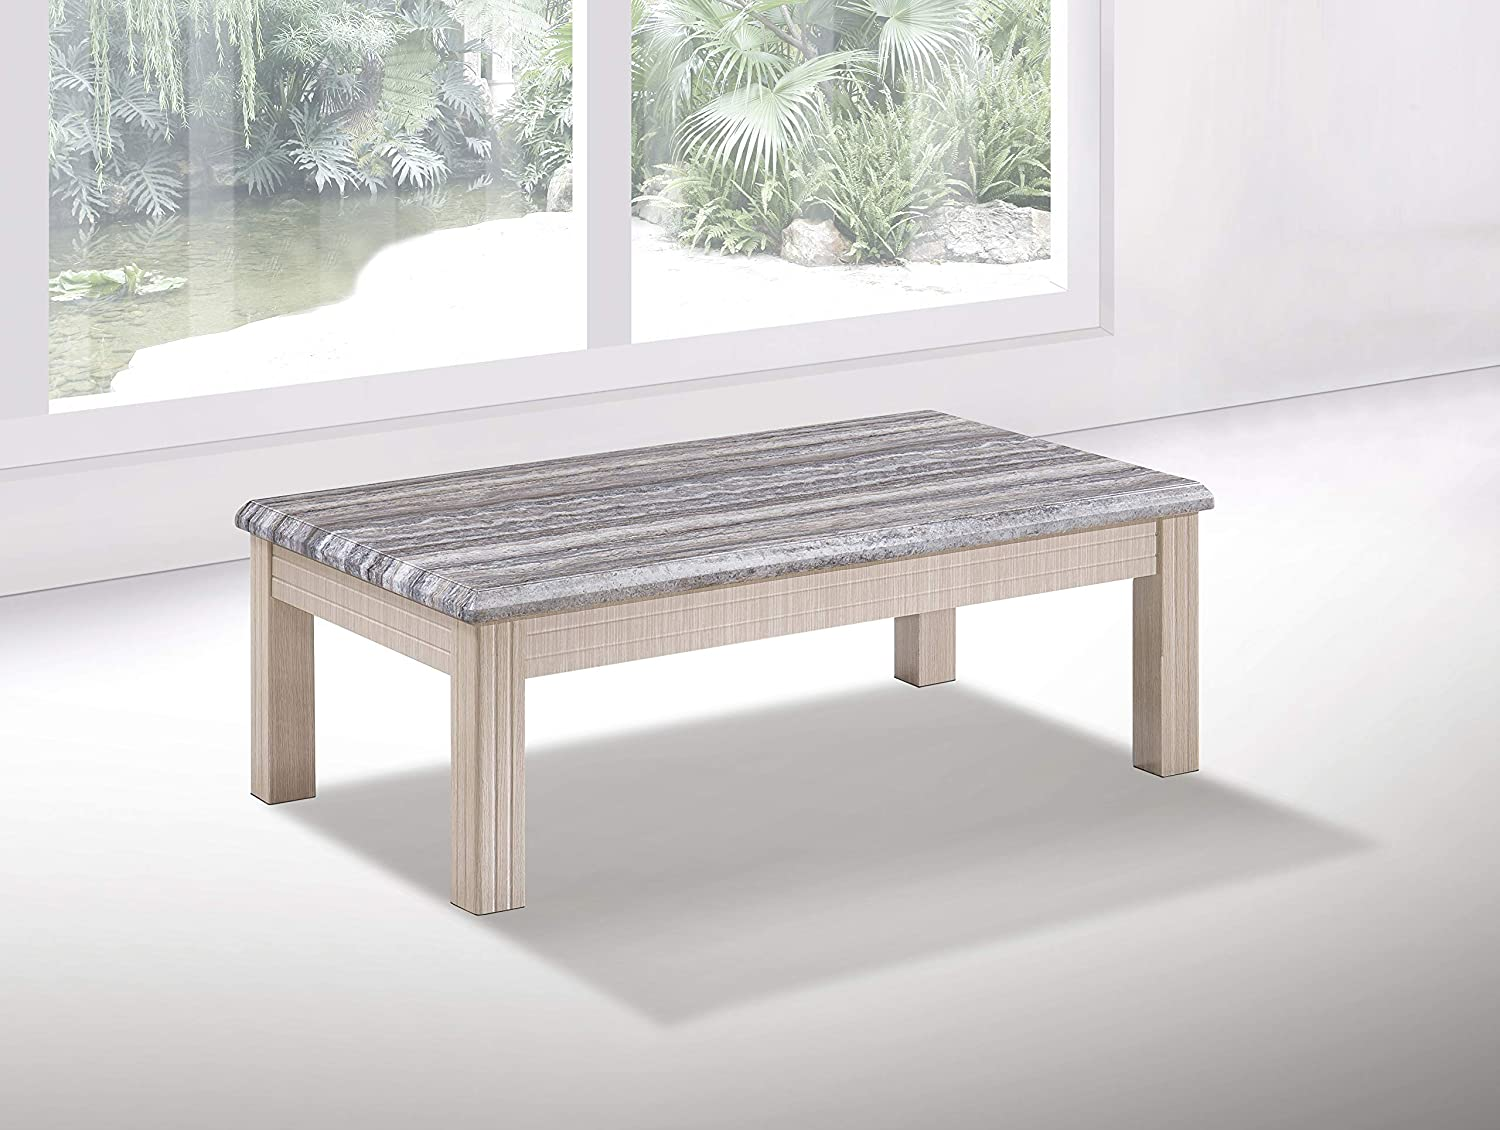 Furniture Express Oak Marble Effect Coffee Table